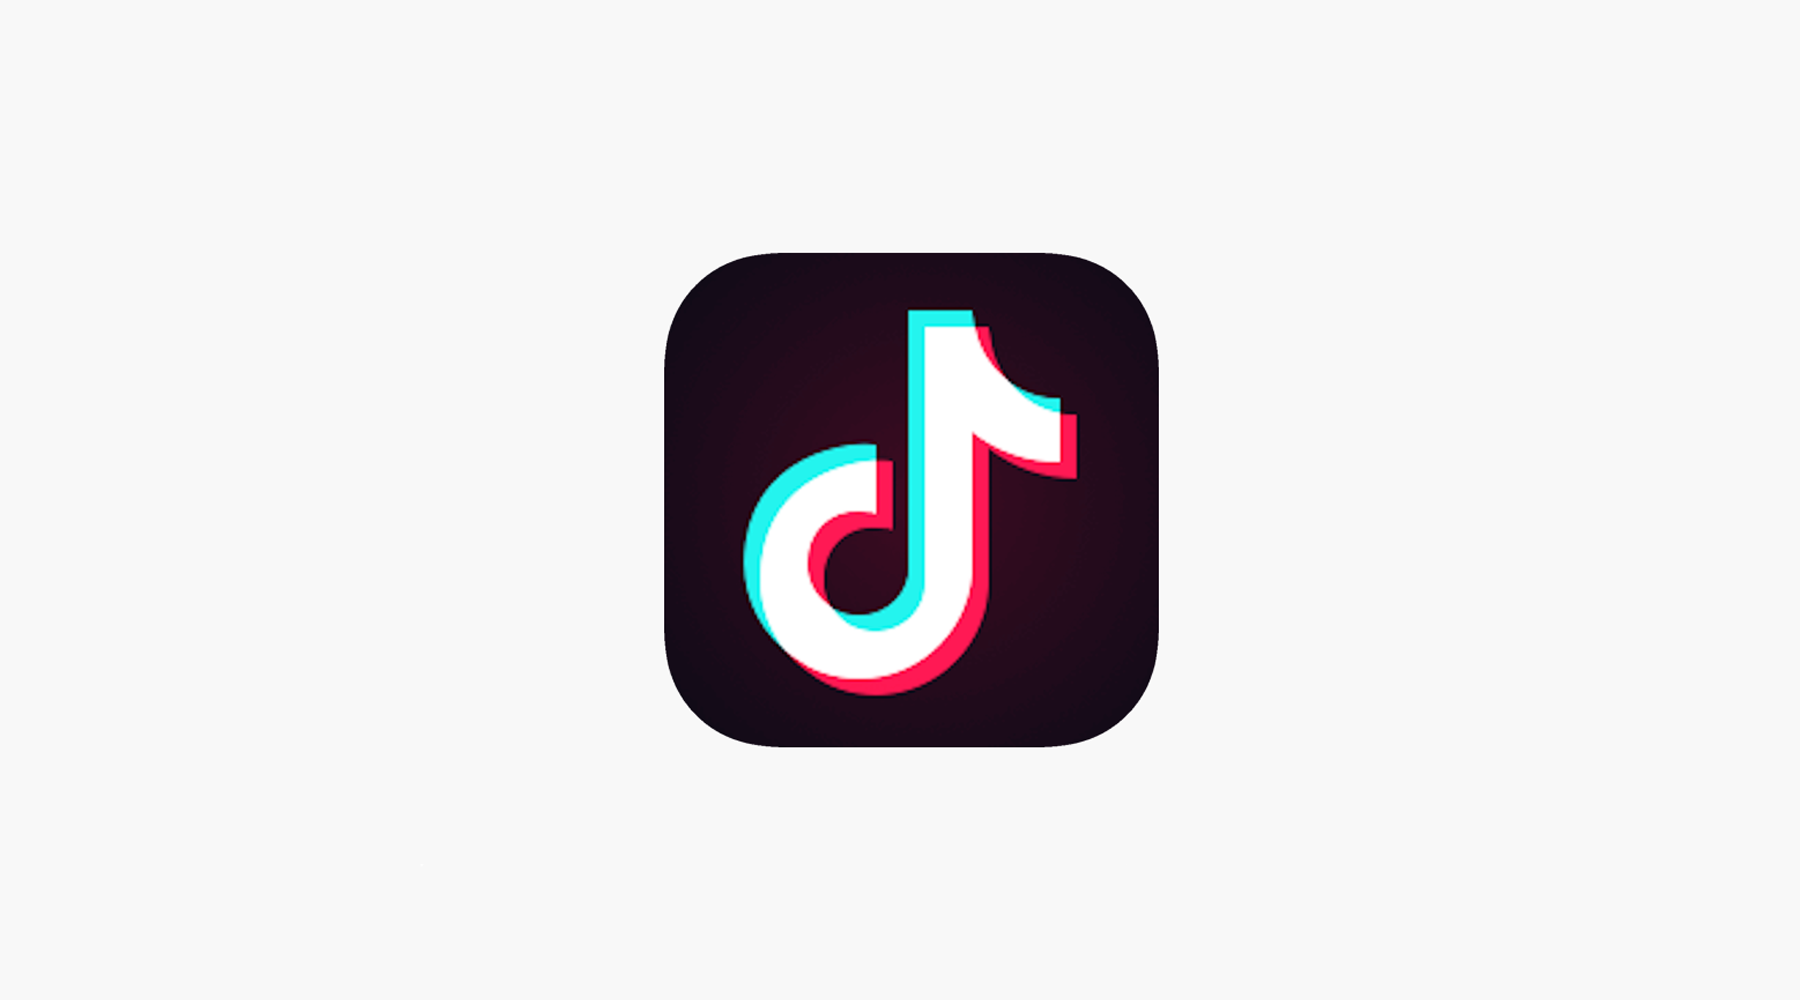 TikTok, The Social Network To Be Considered In 2020?